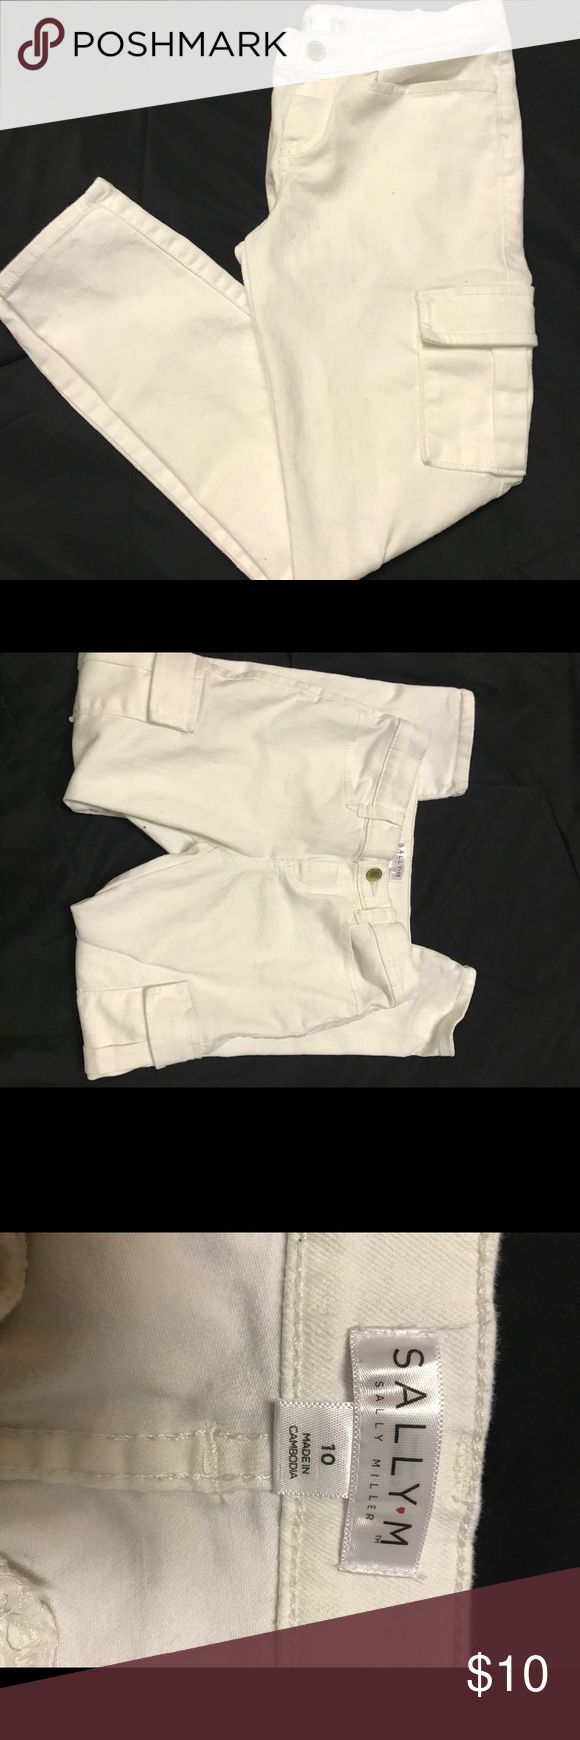 Girls white pants Great condition girls size 10! Cute pocket and great for summer nights or those cozy fall days! Please make an offer! Sally Miller Bottoms Casual